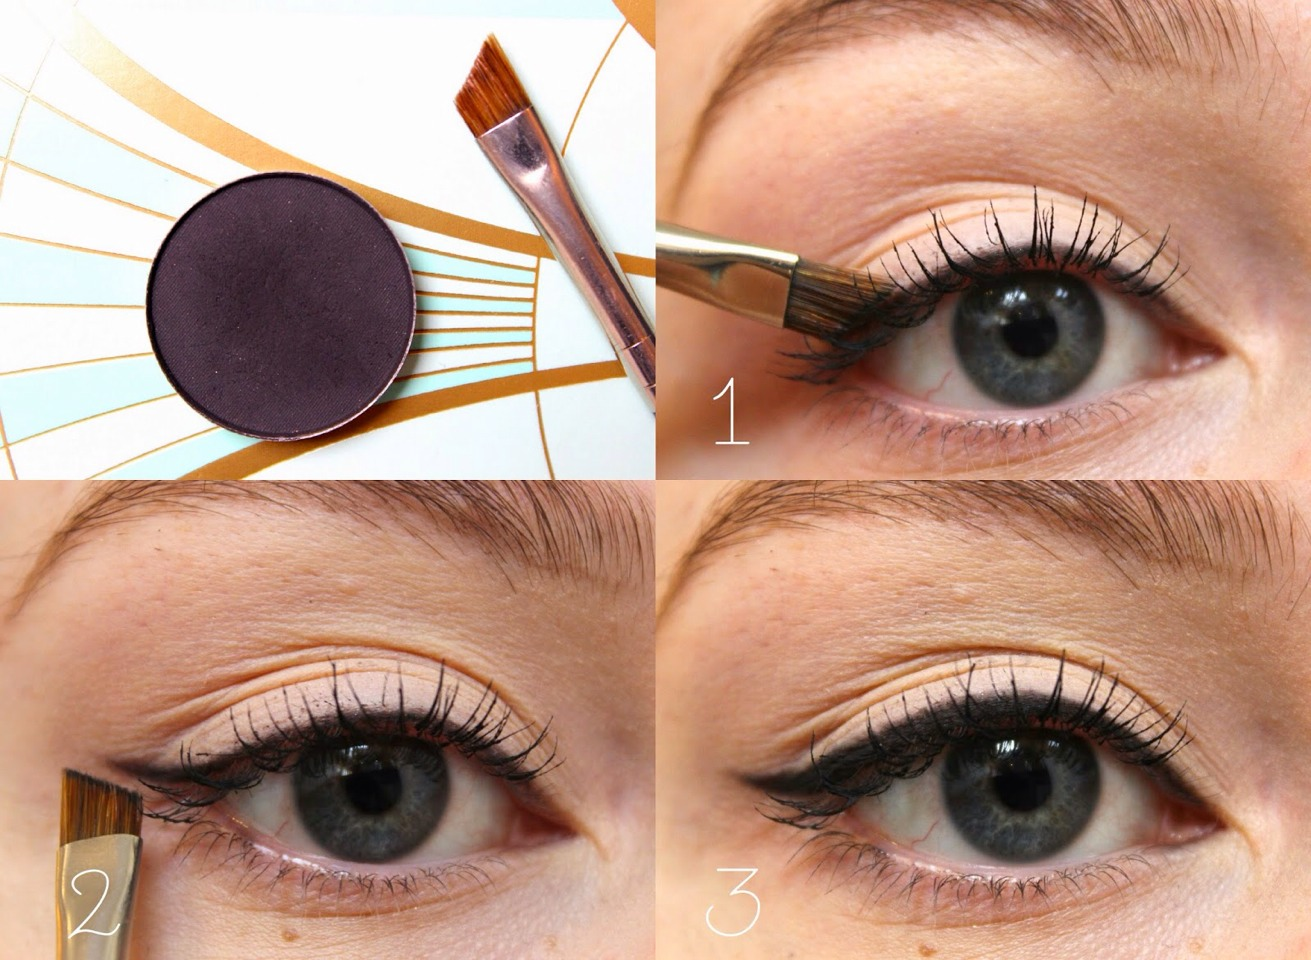 Apply a thin, soft line. Heavy liner on the lower lash line ends up looking like your mascara has smeared. Even if you use black for the lower lash line, apply it softer than you would for the upper lash line.